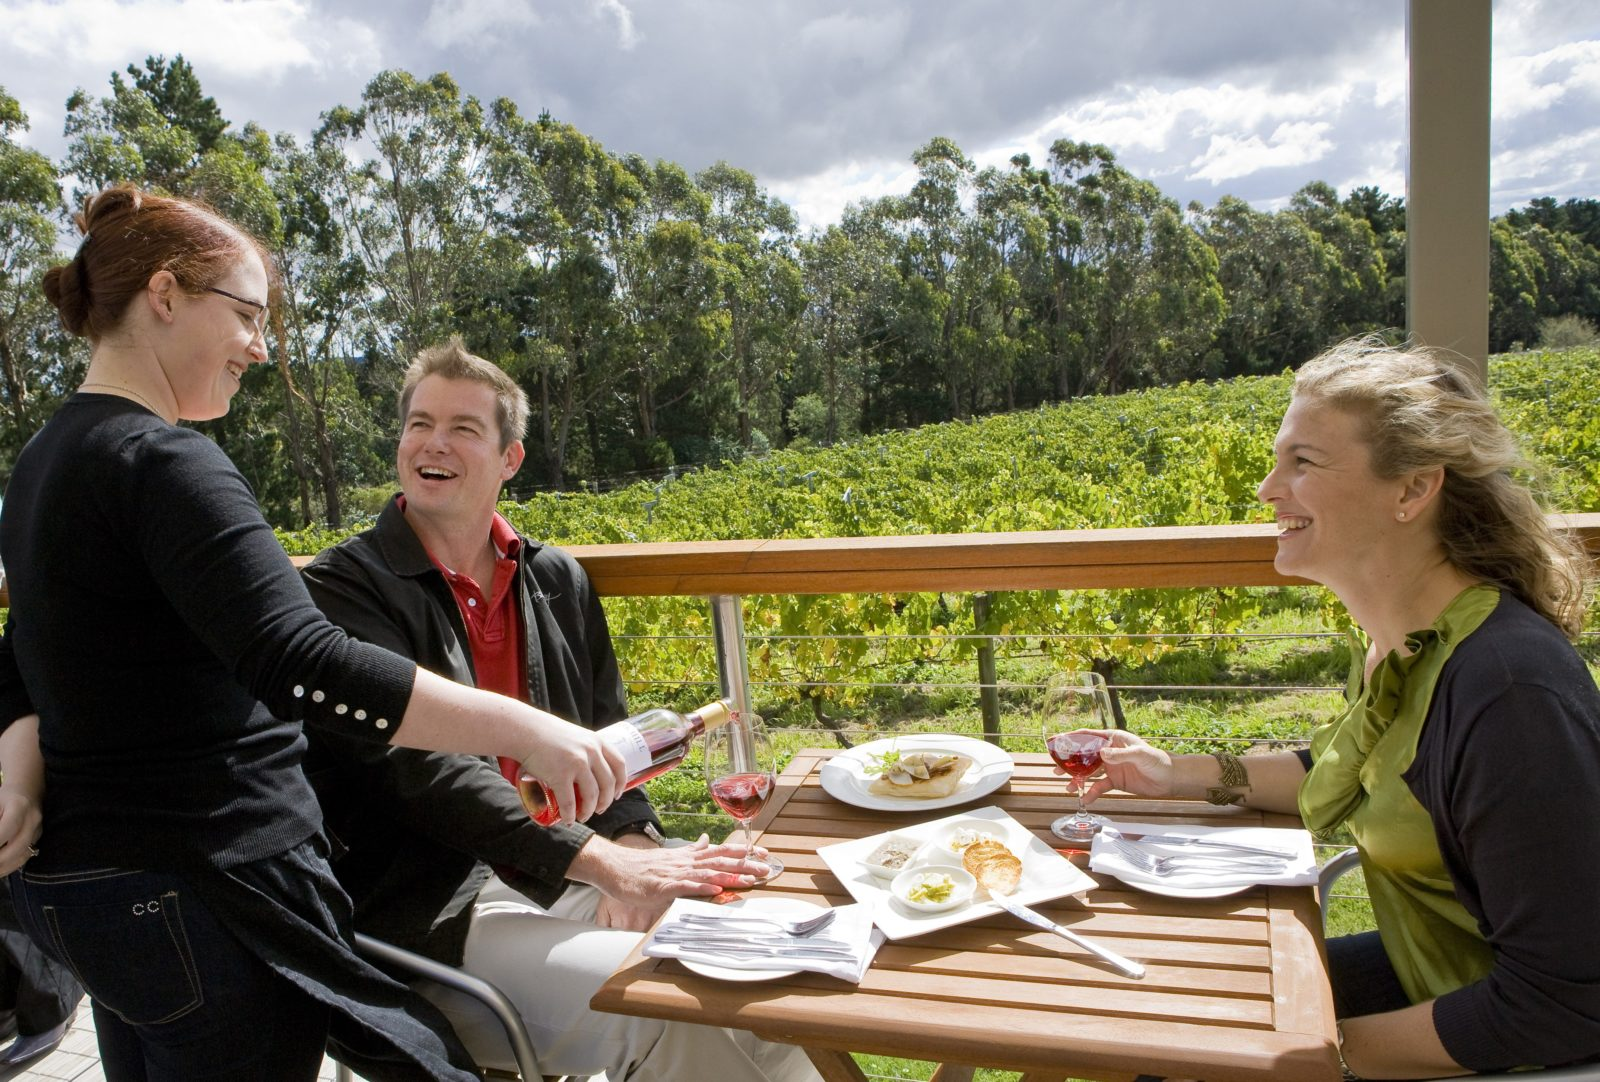 Couple enjoying wine with lunch on the deck overlooking the vines